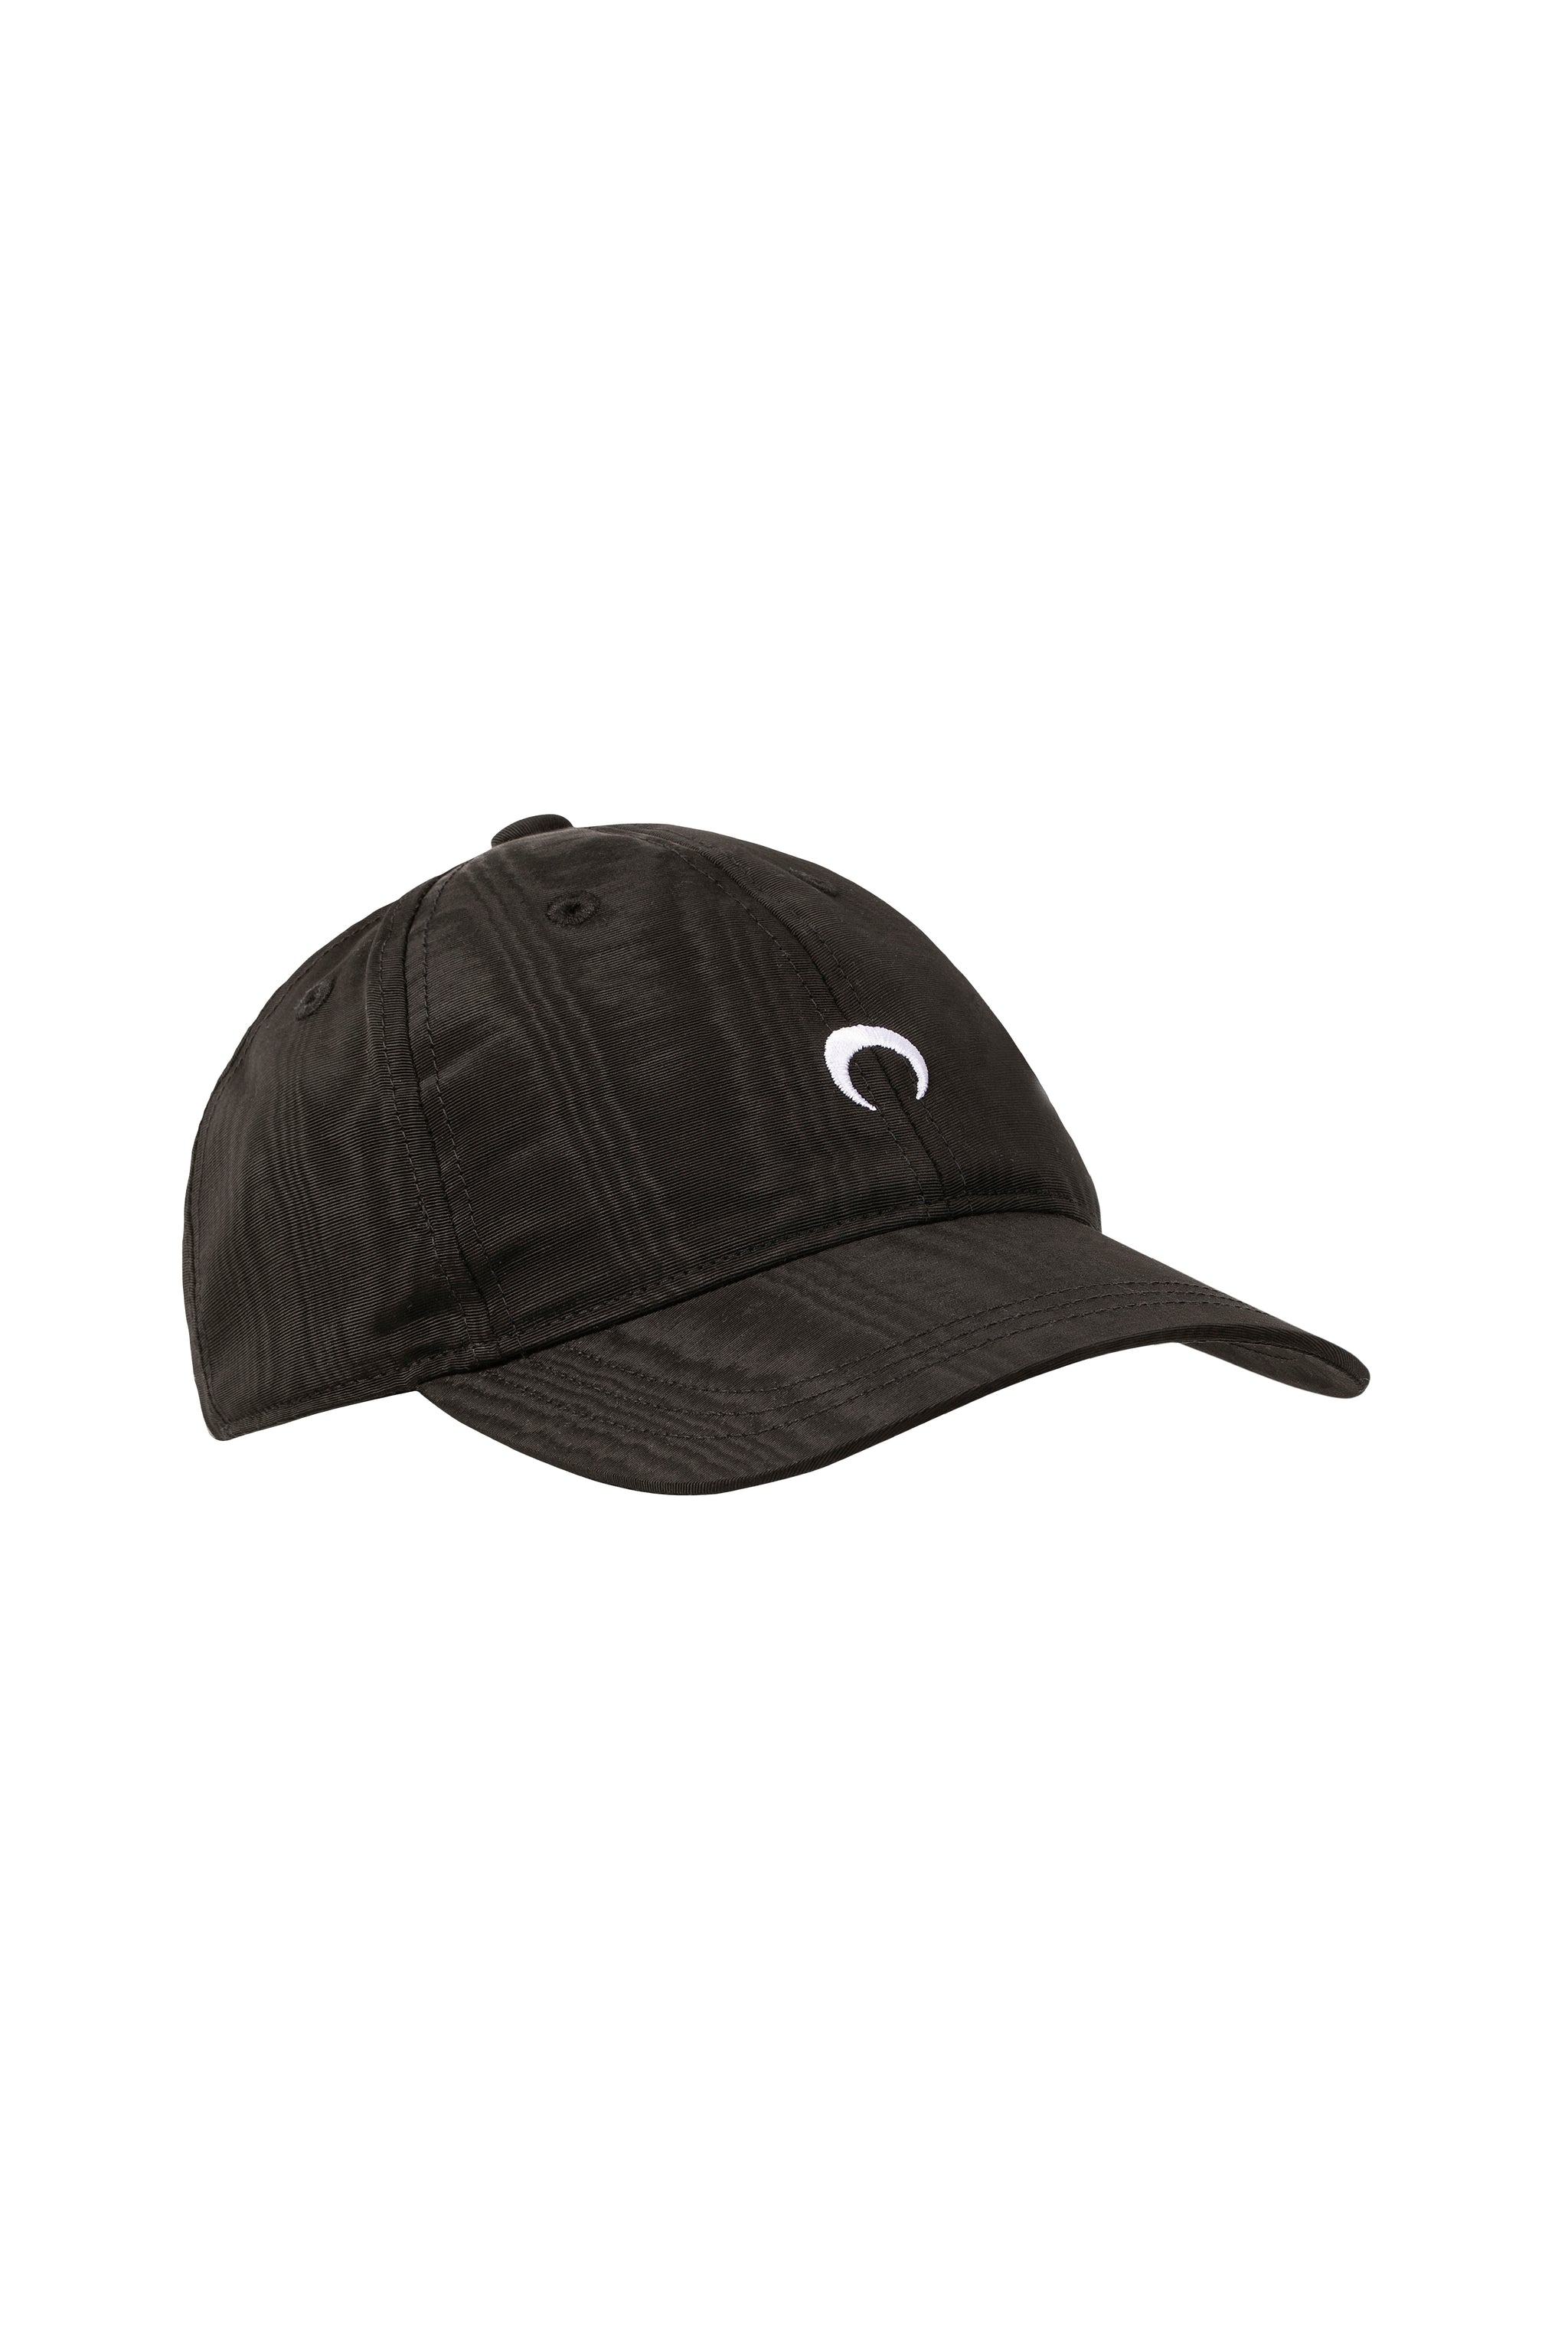 Moire Baseball Hat Black